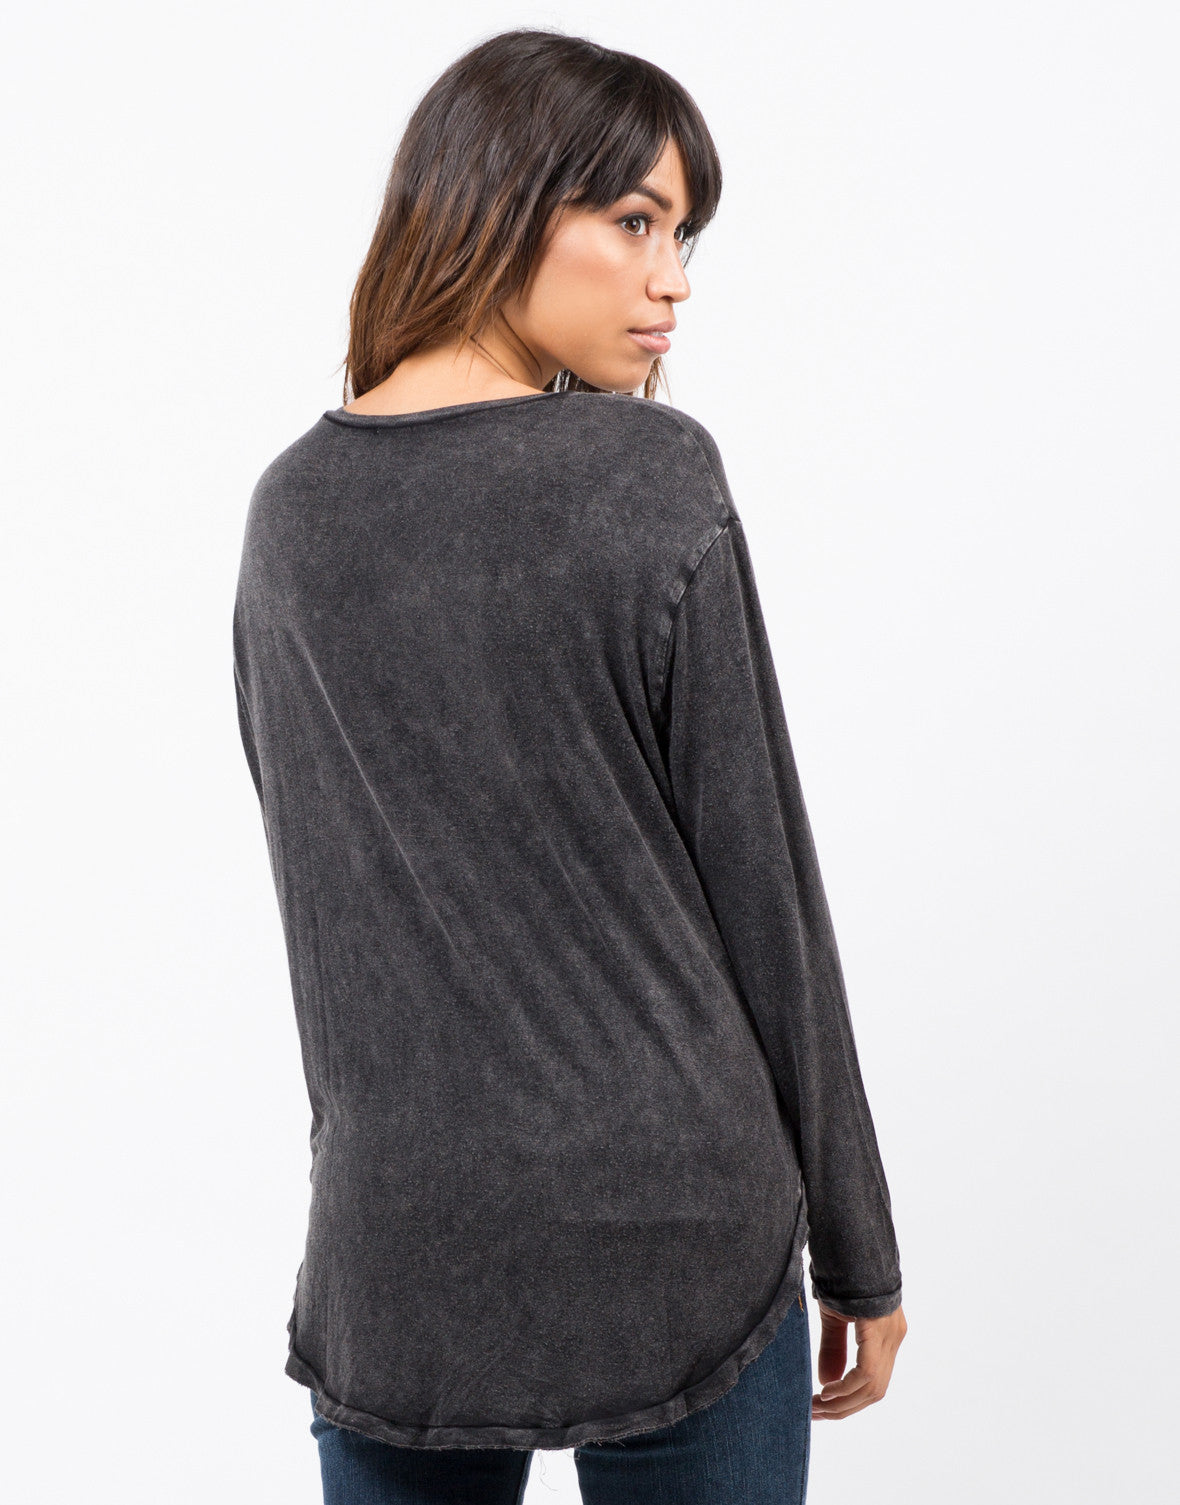 Back view of Basic Long Sleeve Pocket Top